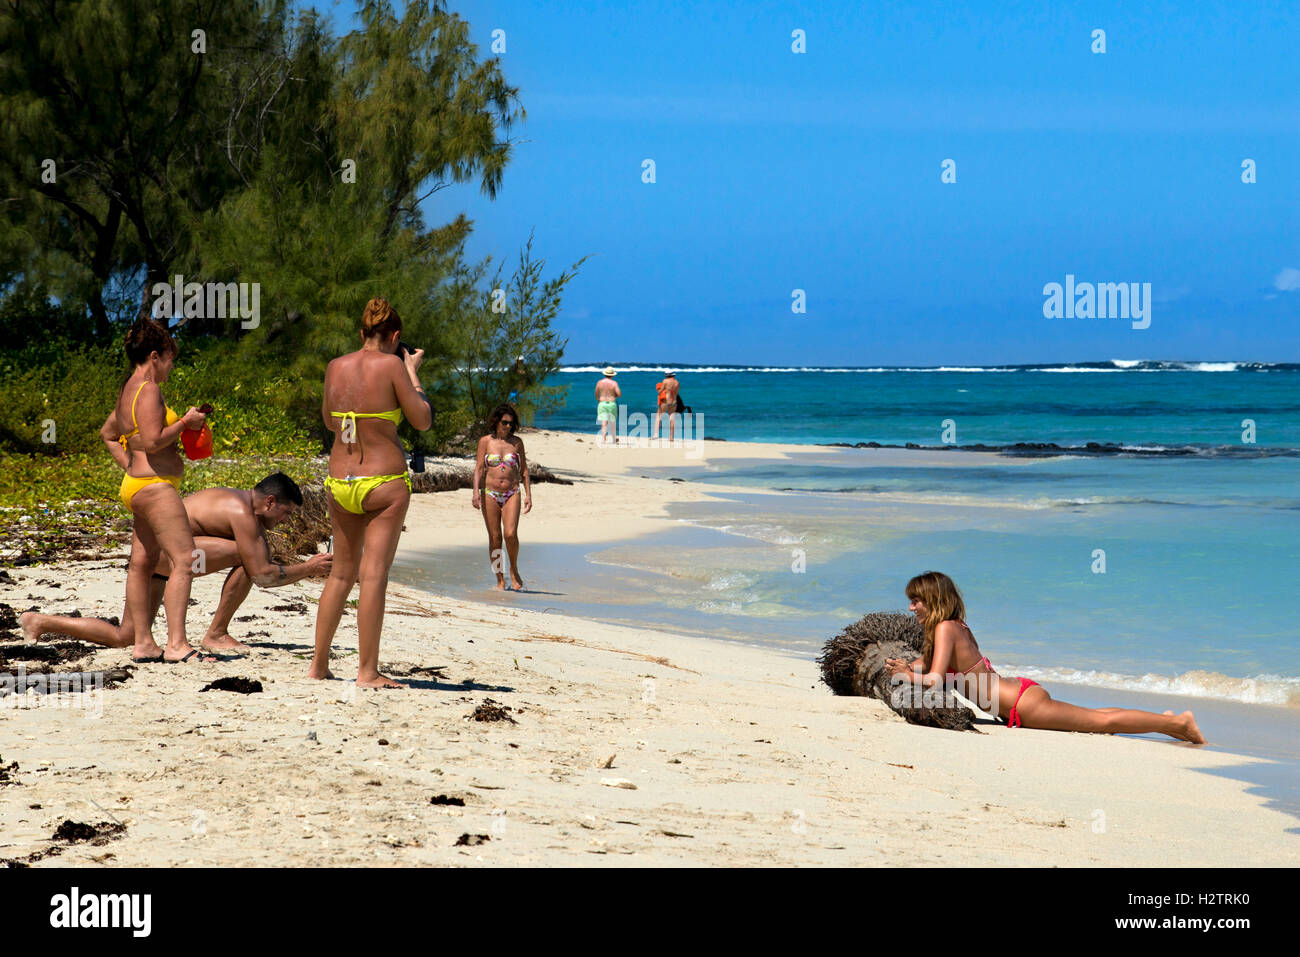 Tourists at the beach in Ile aux Cerfs, Flacq District, Republic of Mauritius. - Stock Image